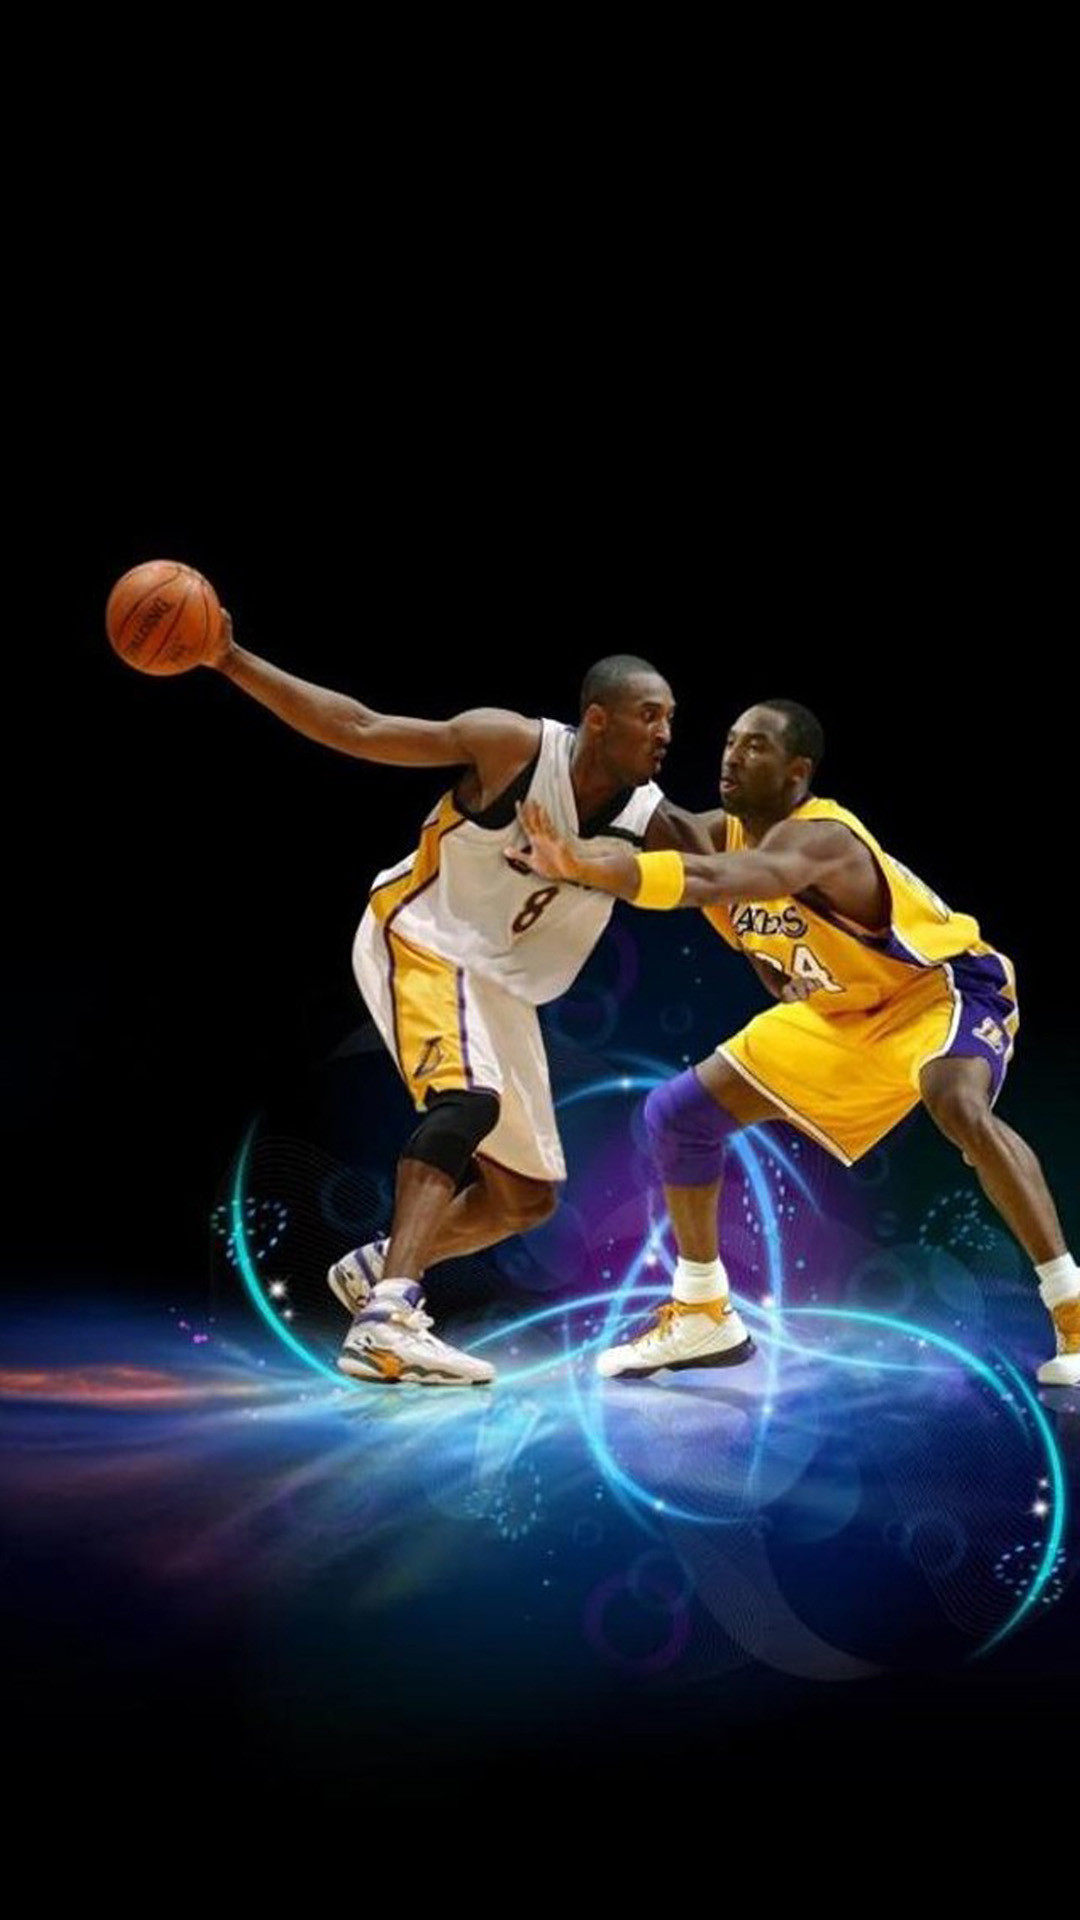 Kobe Wallpaper Iphone X Basketball Court Wallpapers 60 Images